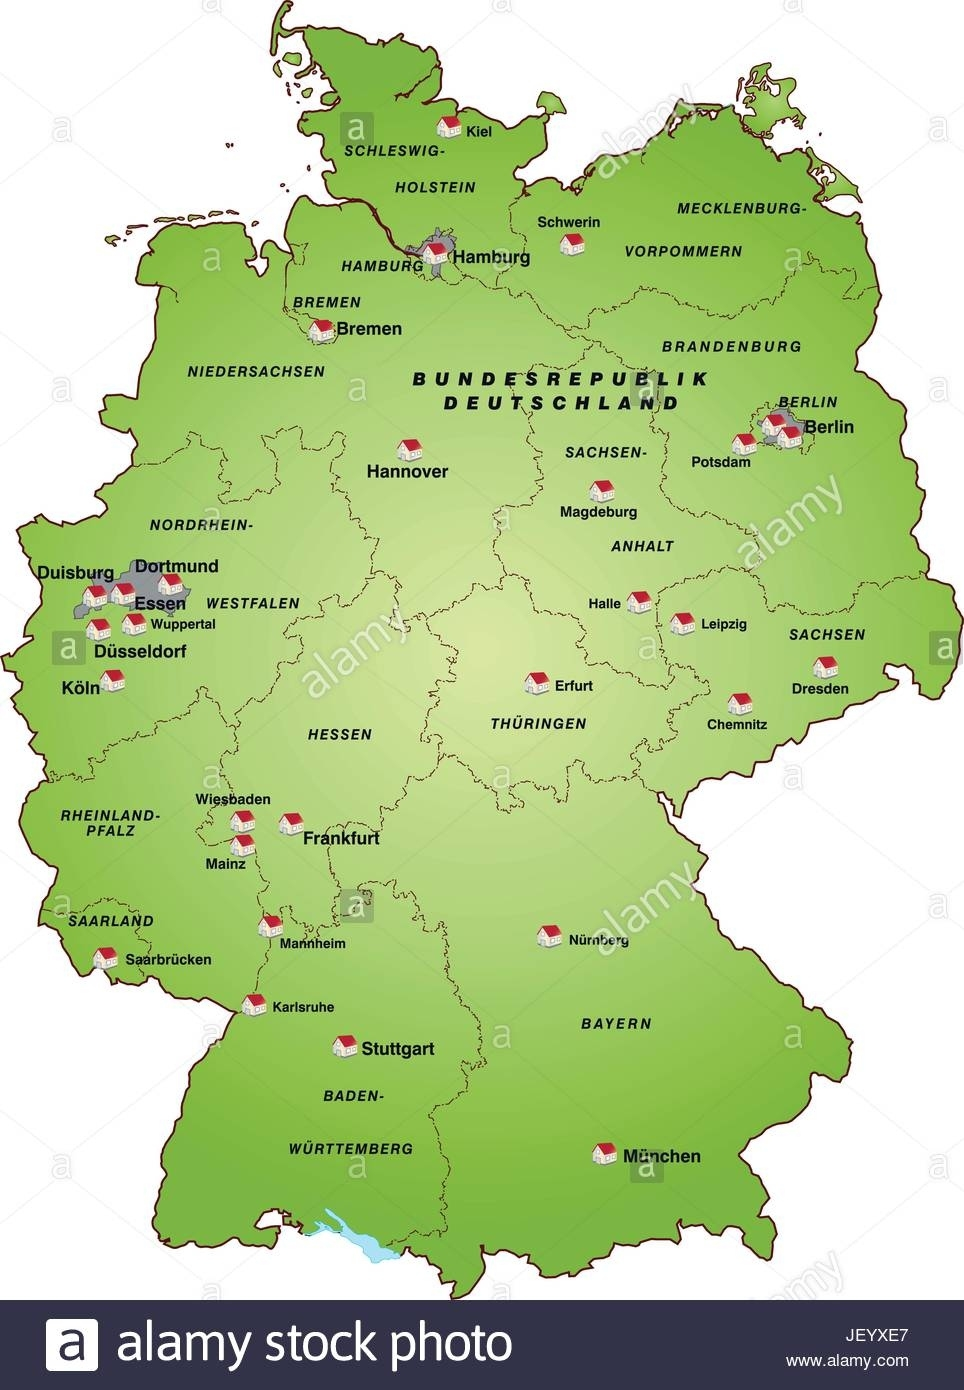 Card, State, Atlas, Map Of The World, Map, Map Of Germany, Germany intended for World Map Of Germany And Surrounding Countries